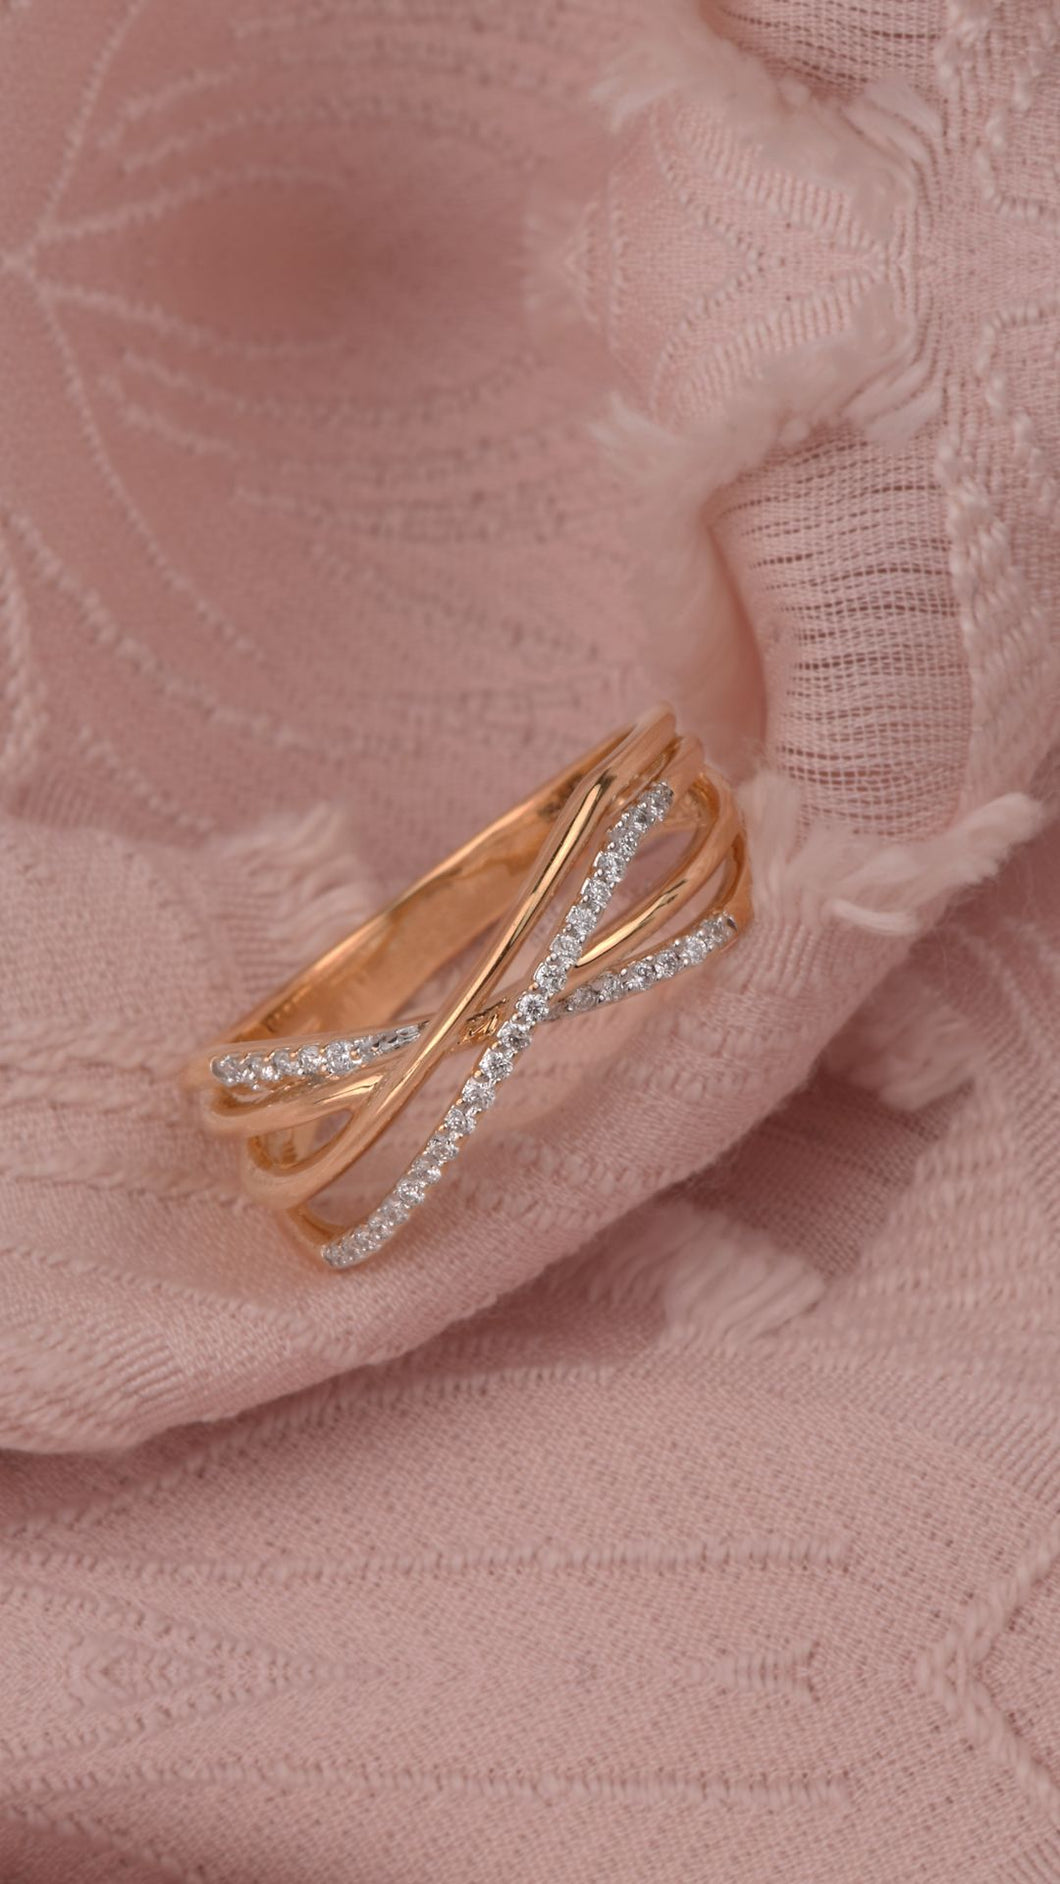 Buy Handcrafted Gold Ring - Best Gold Rings for Women